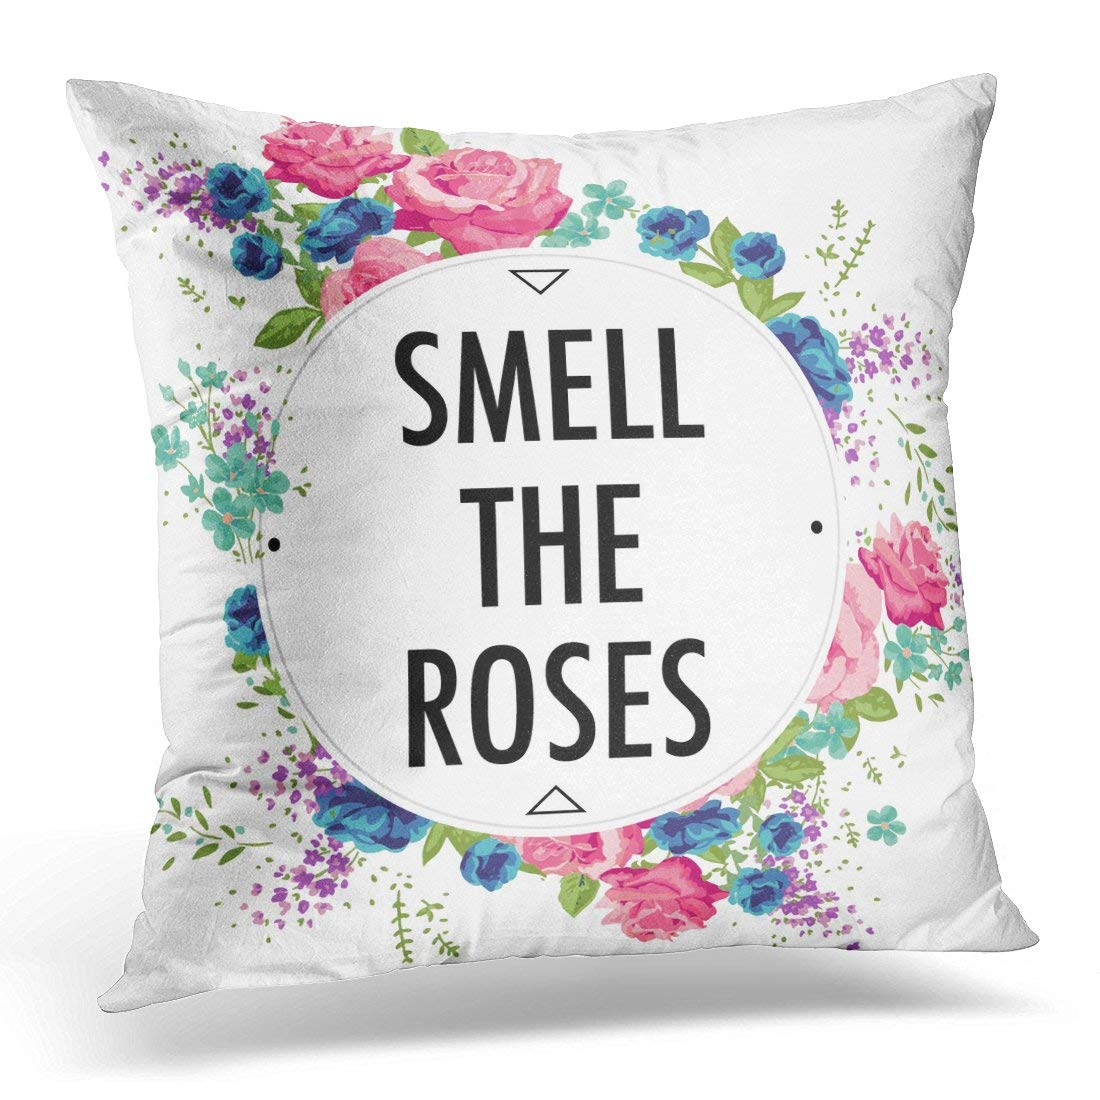 ARHOME Black Girl Rose Slogan Other Uses in Teen Pillow Case Pillow Cover 20x20 inch